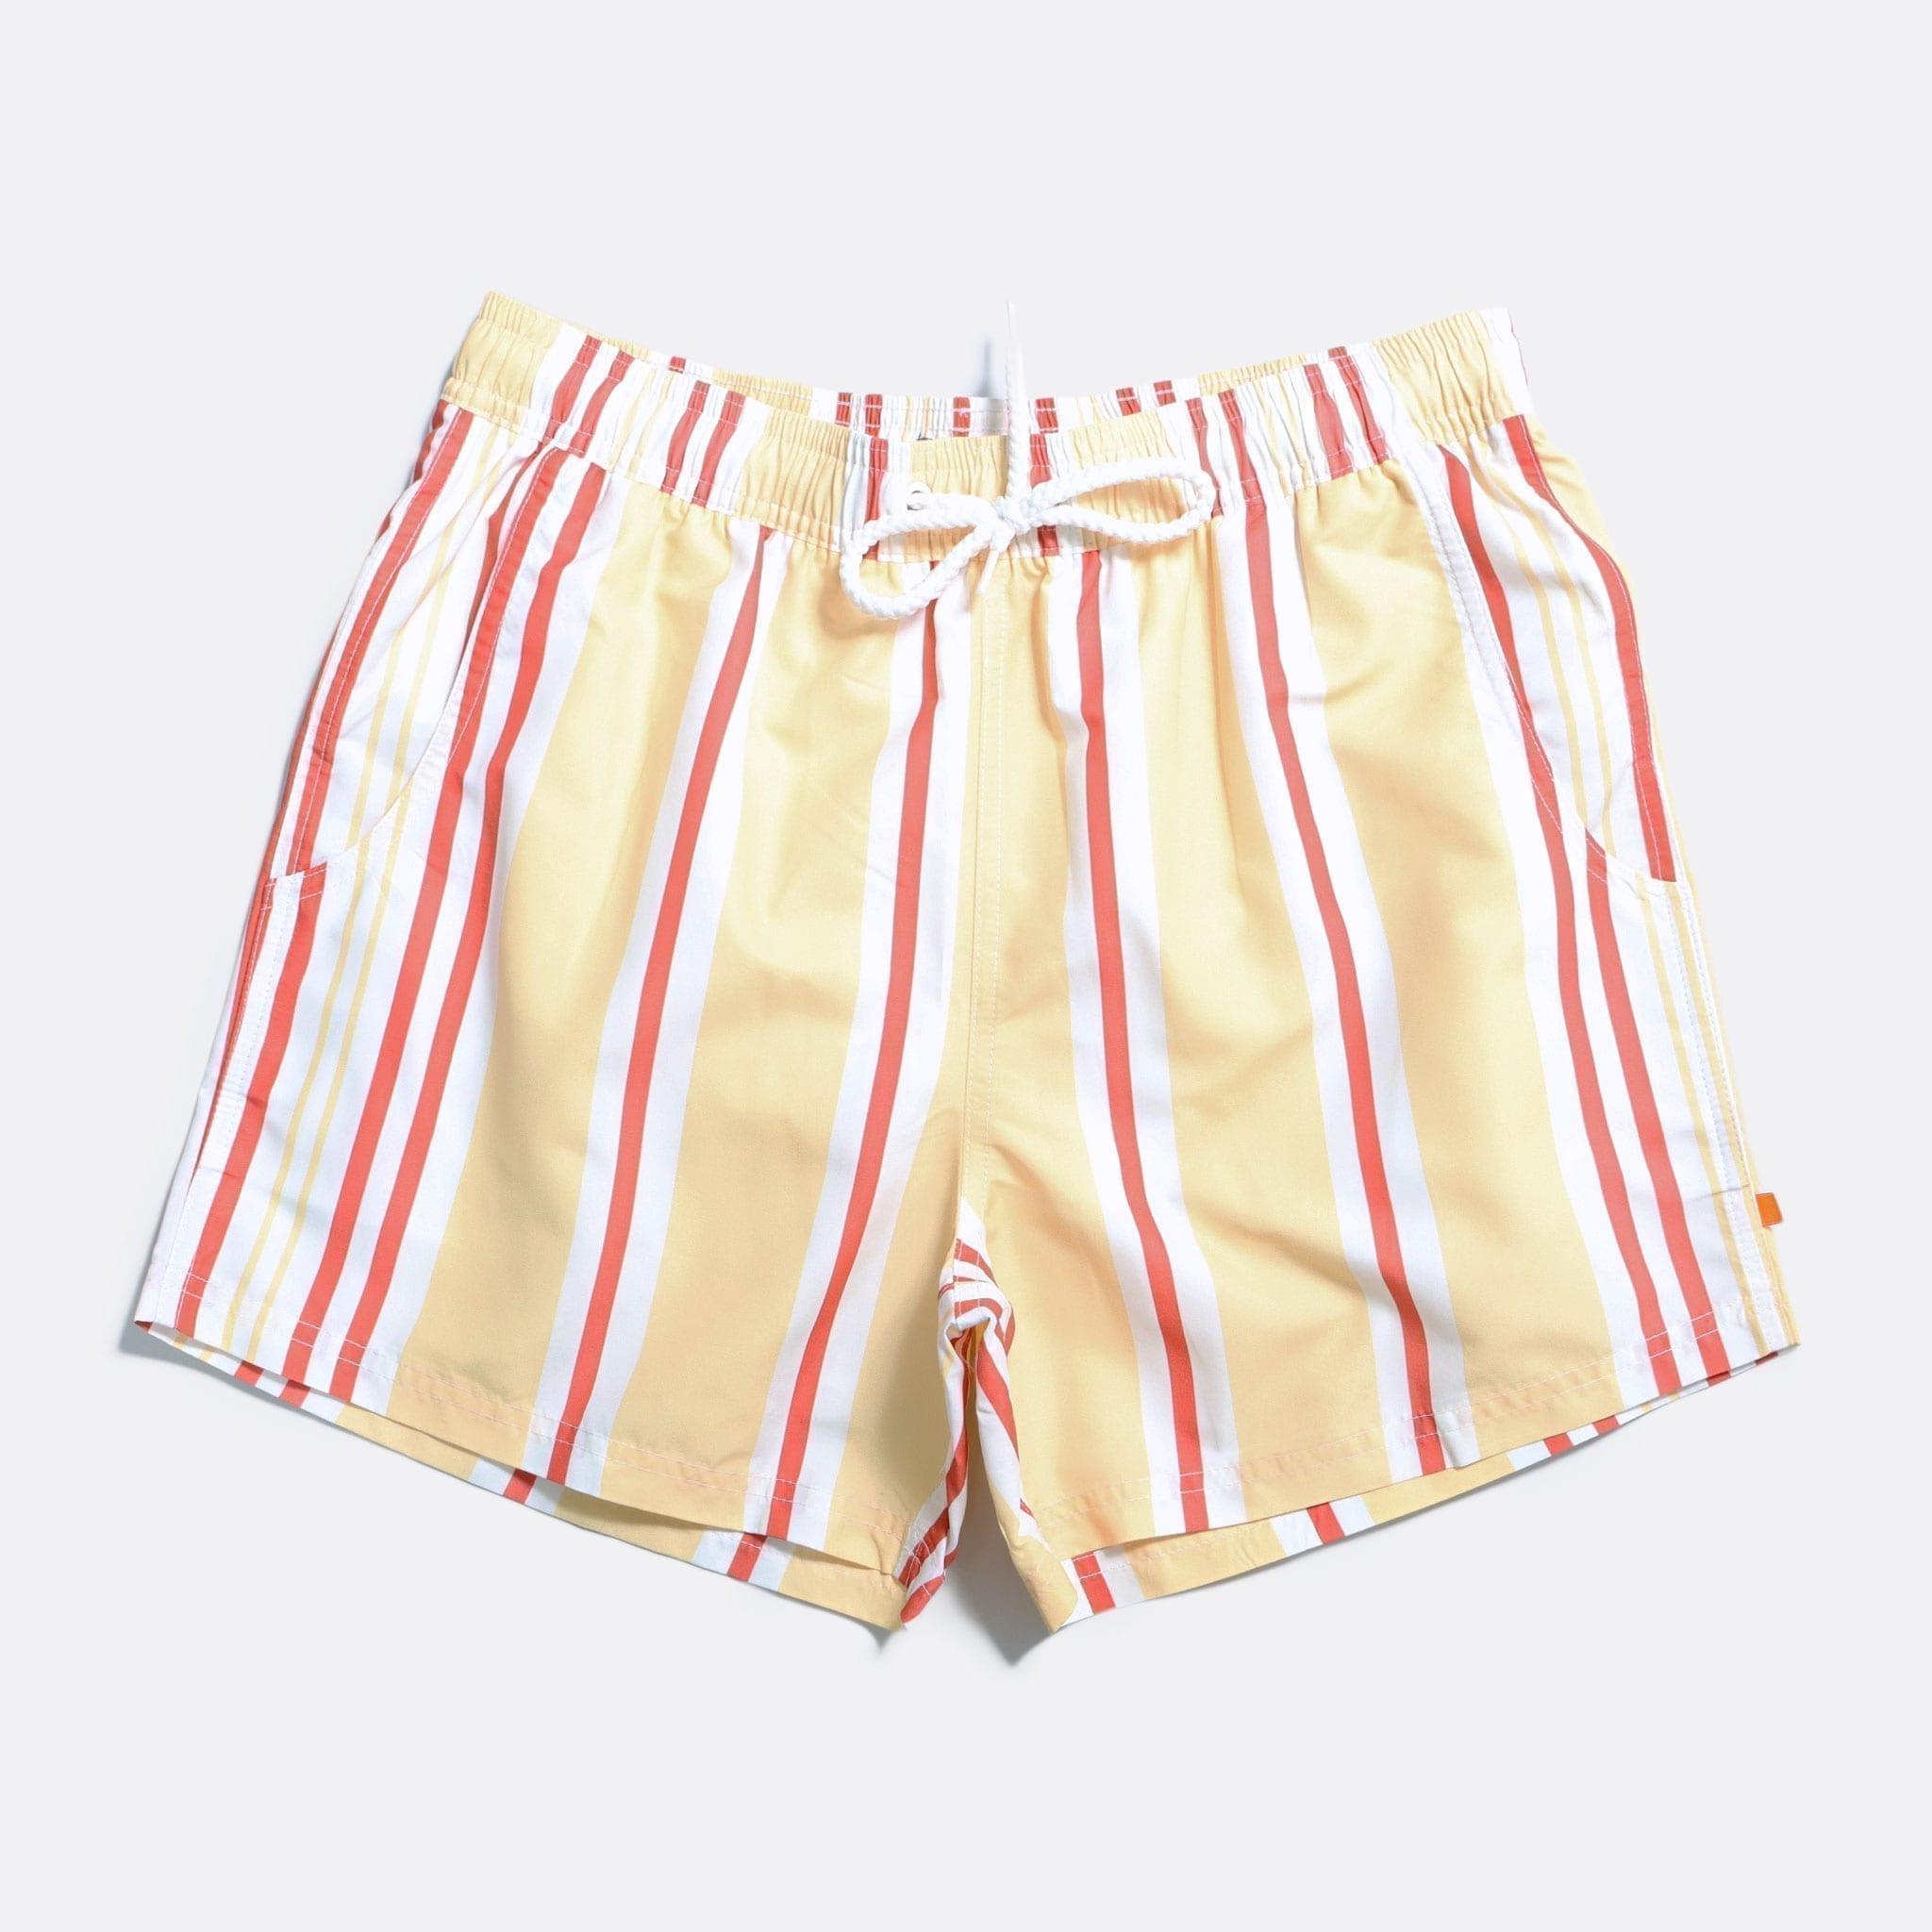 Far Afield Printed Swimshorts a Multi Colour Recycled Plastic Sustainable Fabric